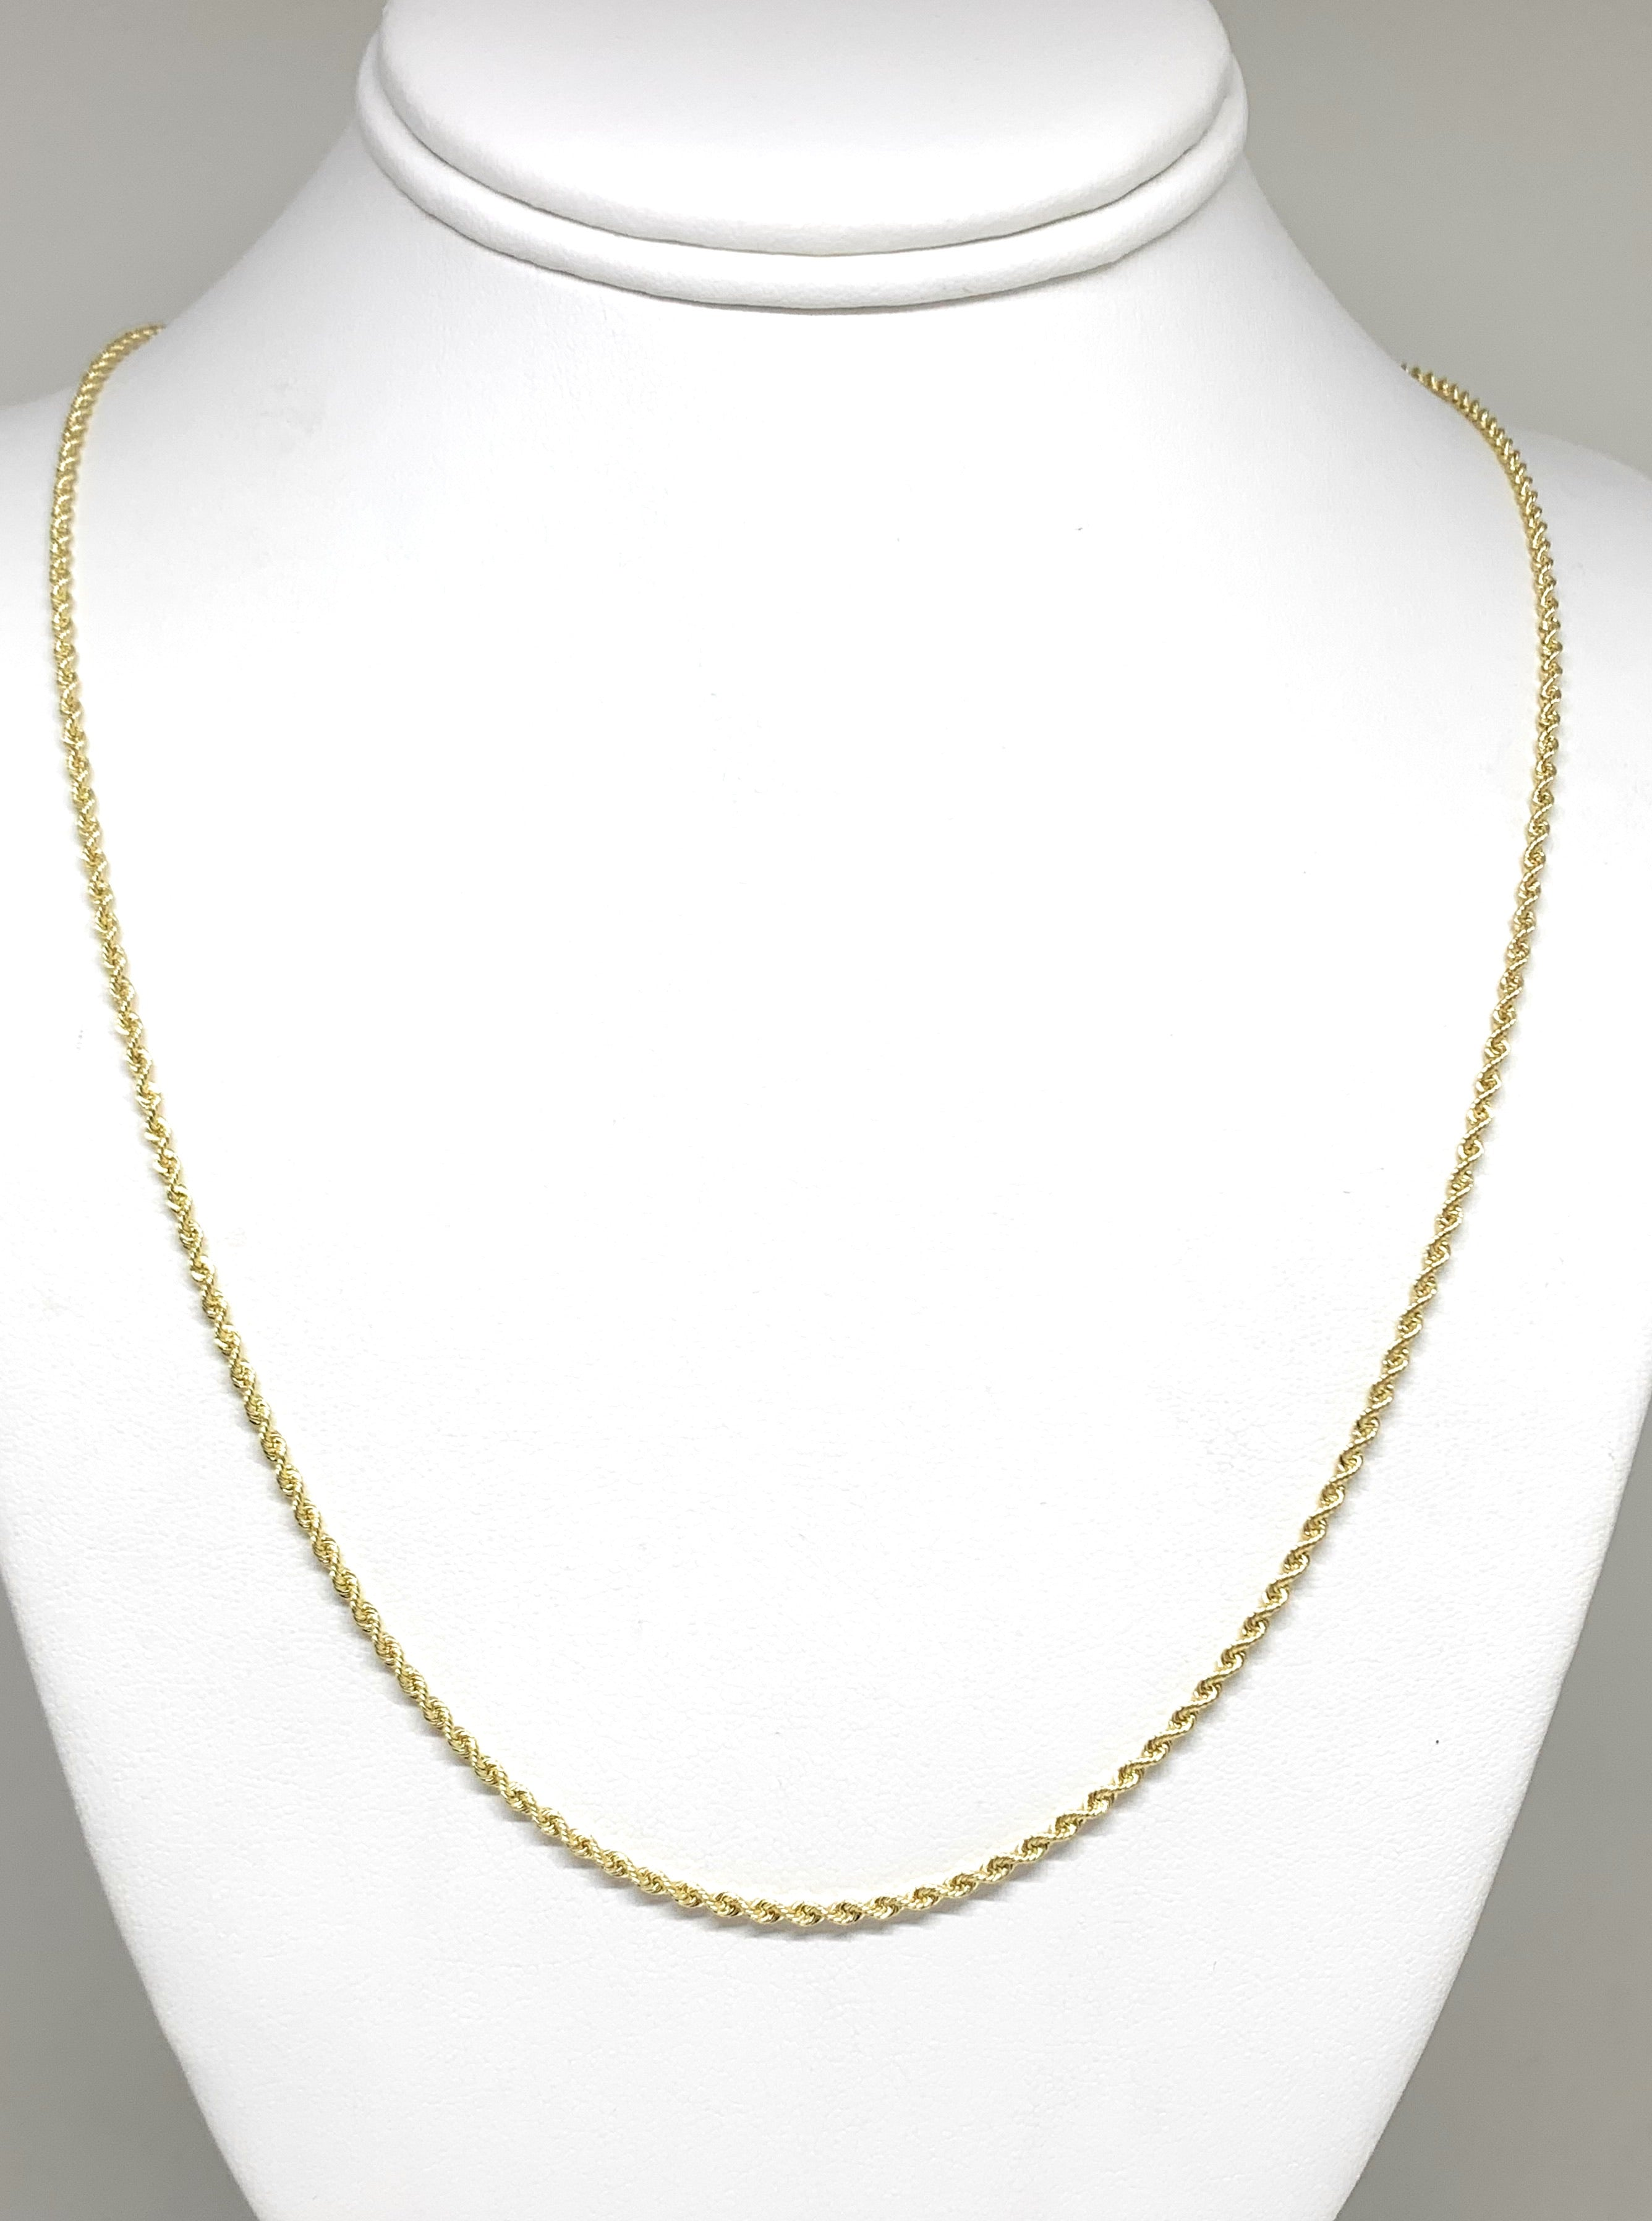 10k Solid Gold Yellow Rope Chain 16-26 inches 2mm (Semi-Hollow Style)